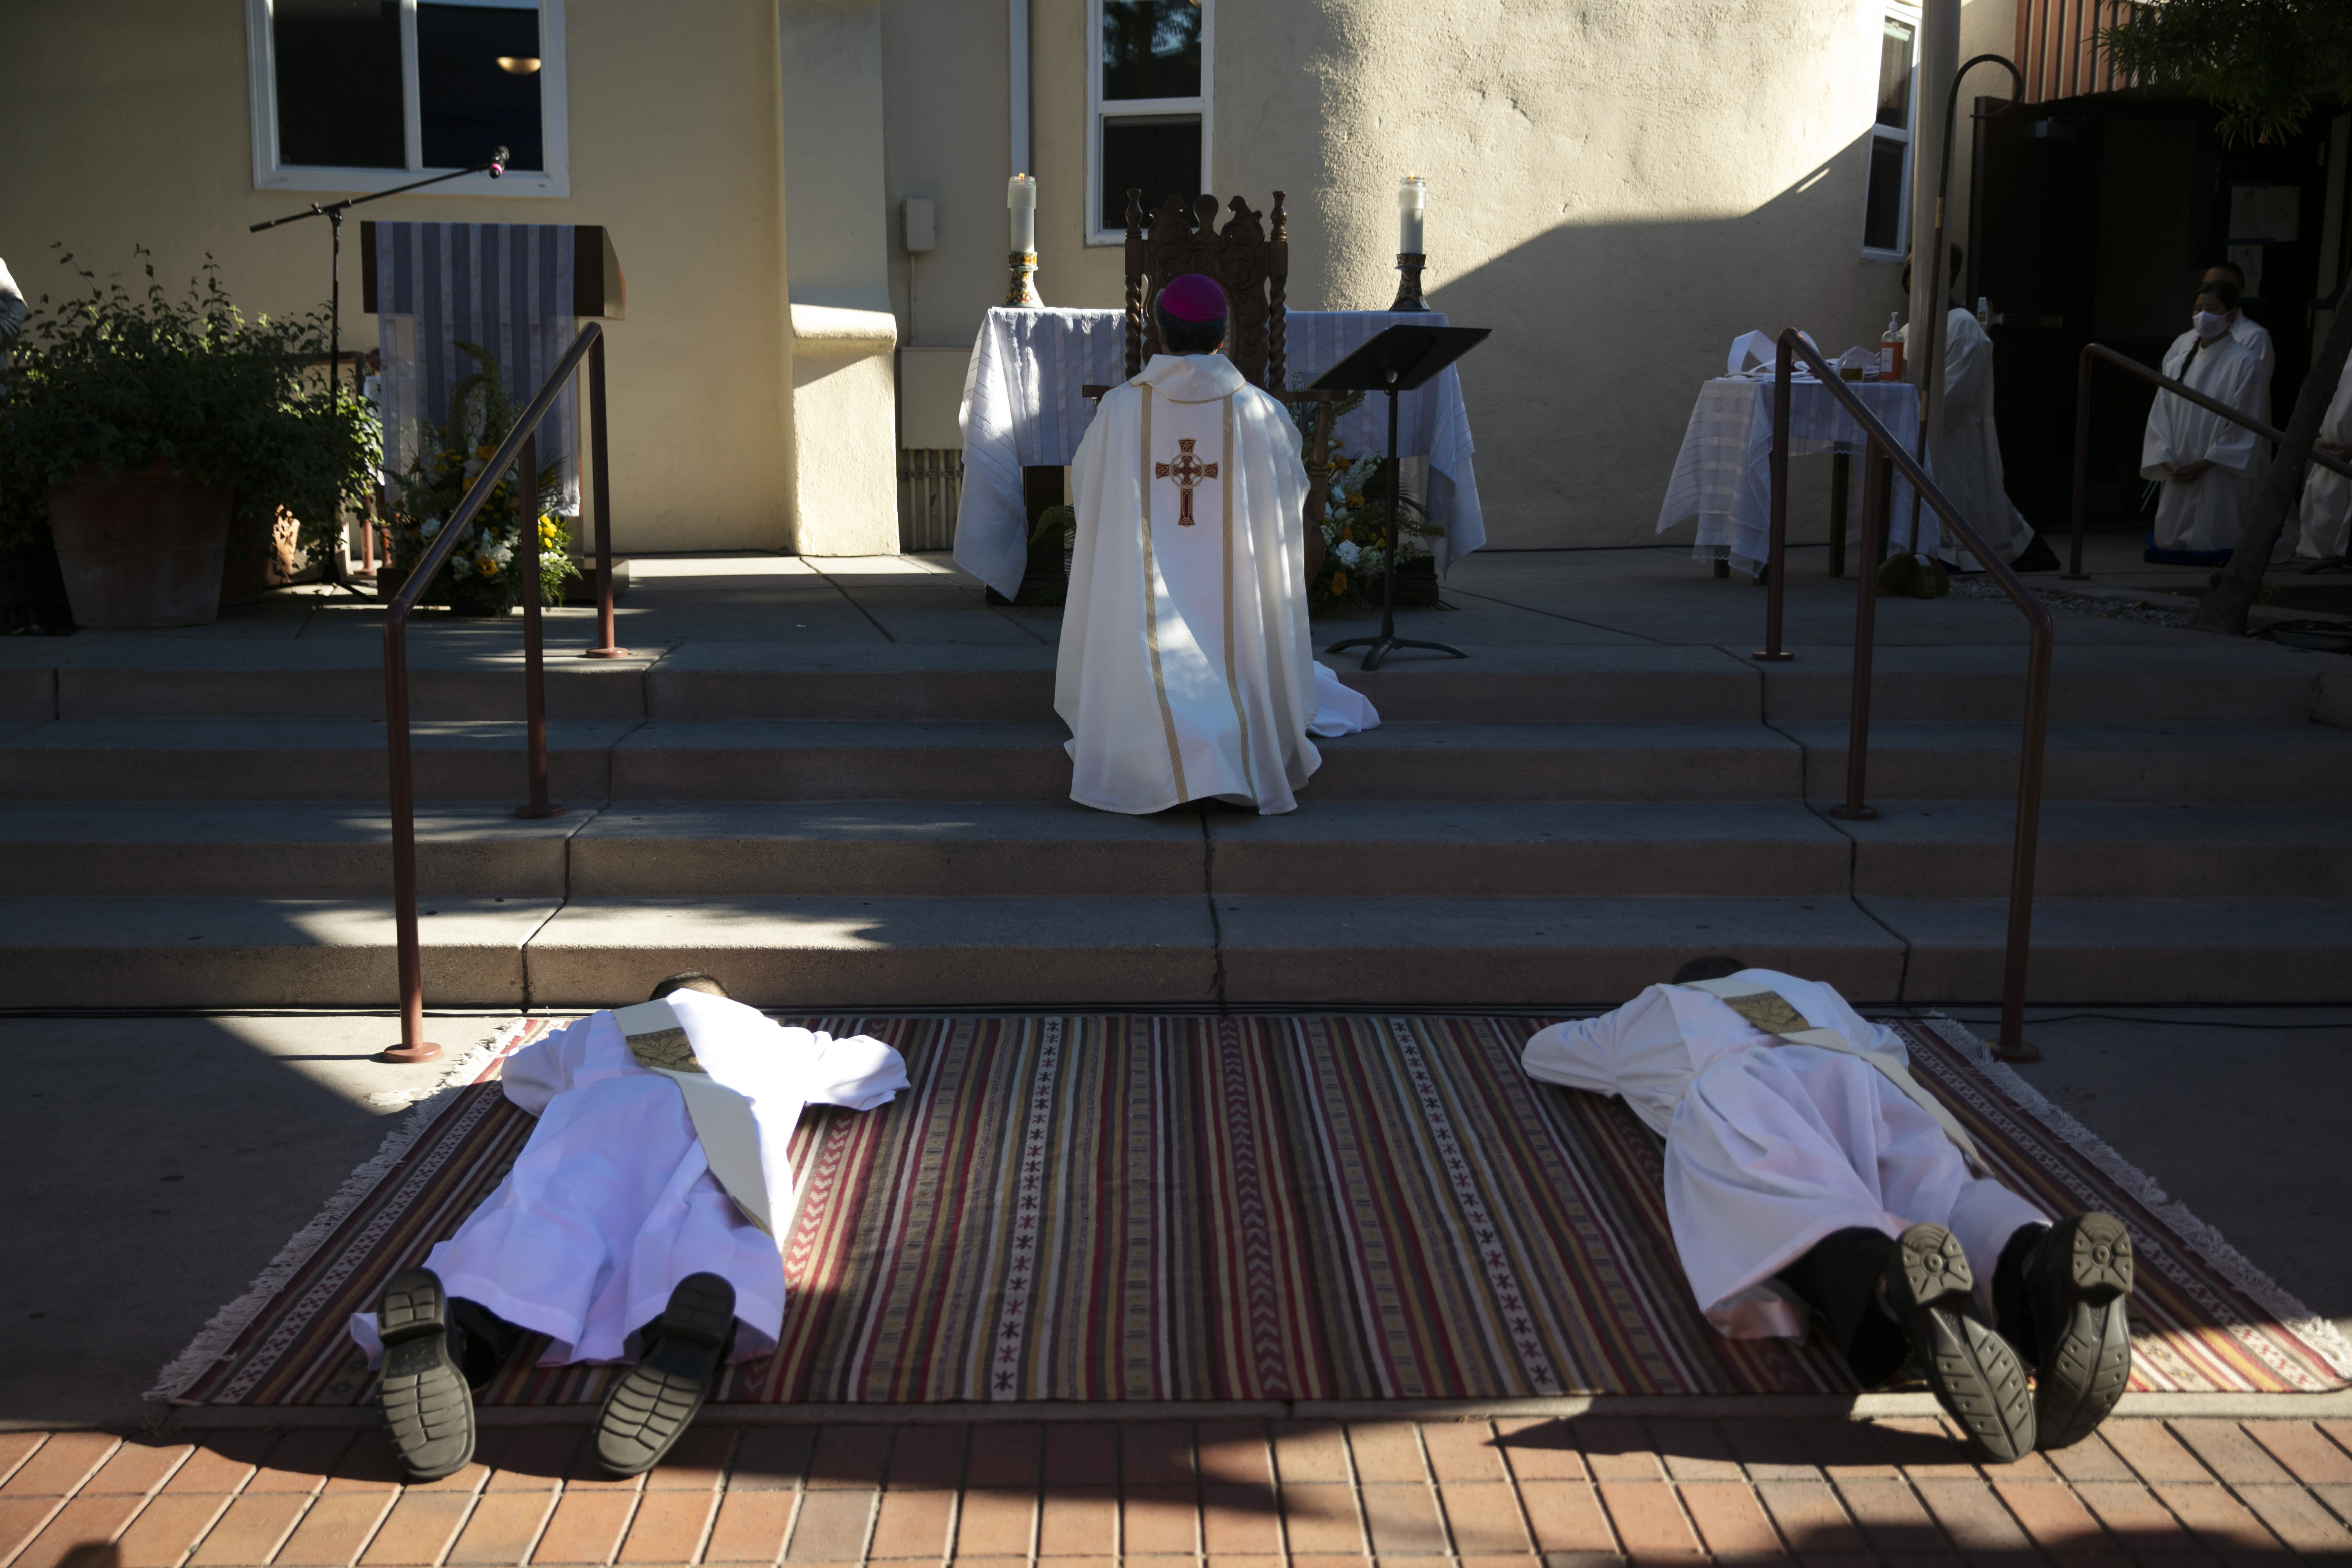 Justin Claravall, bottom left, Gregory Celio lie on a carpet while Bishop Alex Aclan leads a prayer during an ordination ceremony for the new priests at Dolores Mission Church in Los Angeles, Wednesday, July 15, 2020. The ceremony took place outdoors since indoor religious activities have been suspended due to the coronavirus pandemic. (AP Photo/Jae C. Hong)